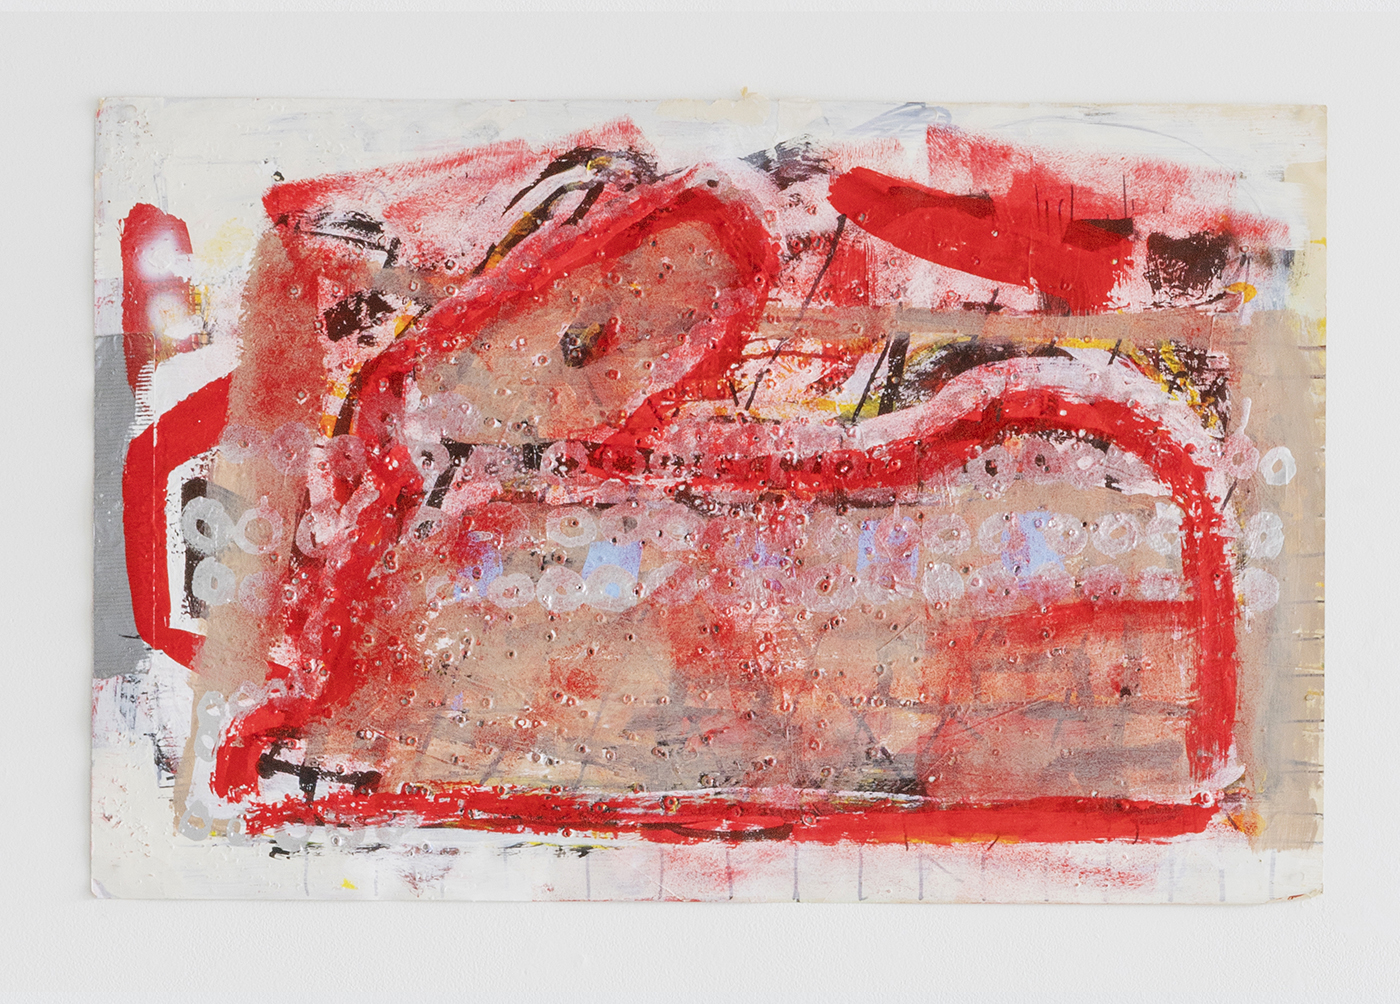 Luchs_Red_Rabbit_2_on_paper_26x40_2020_DESOUSA_GALLERY_web